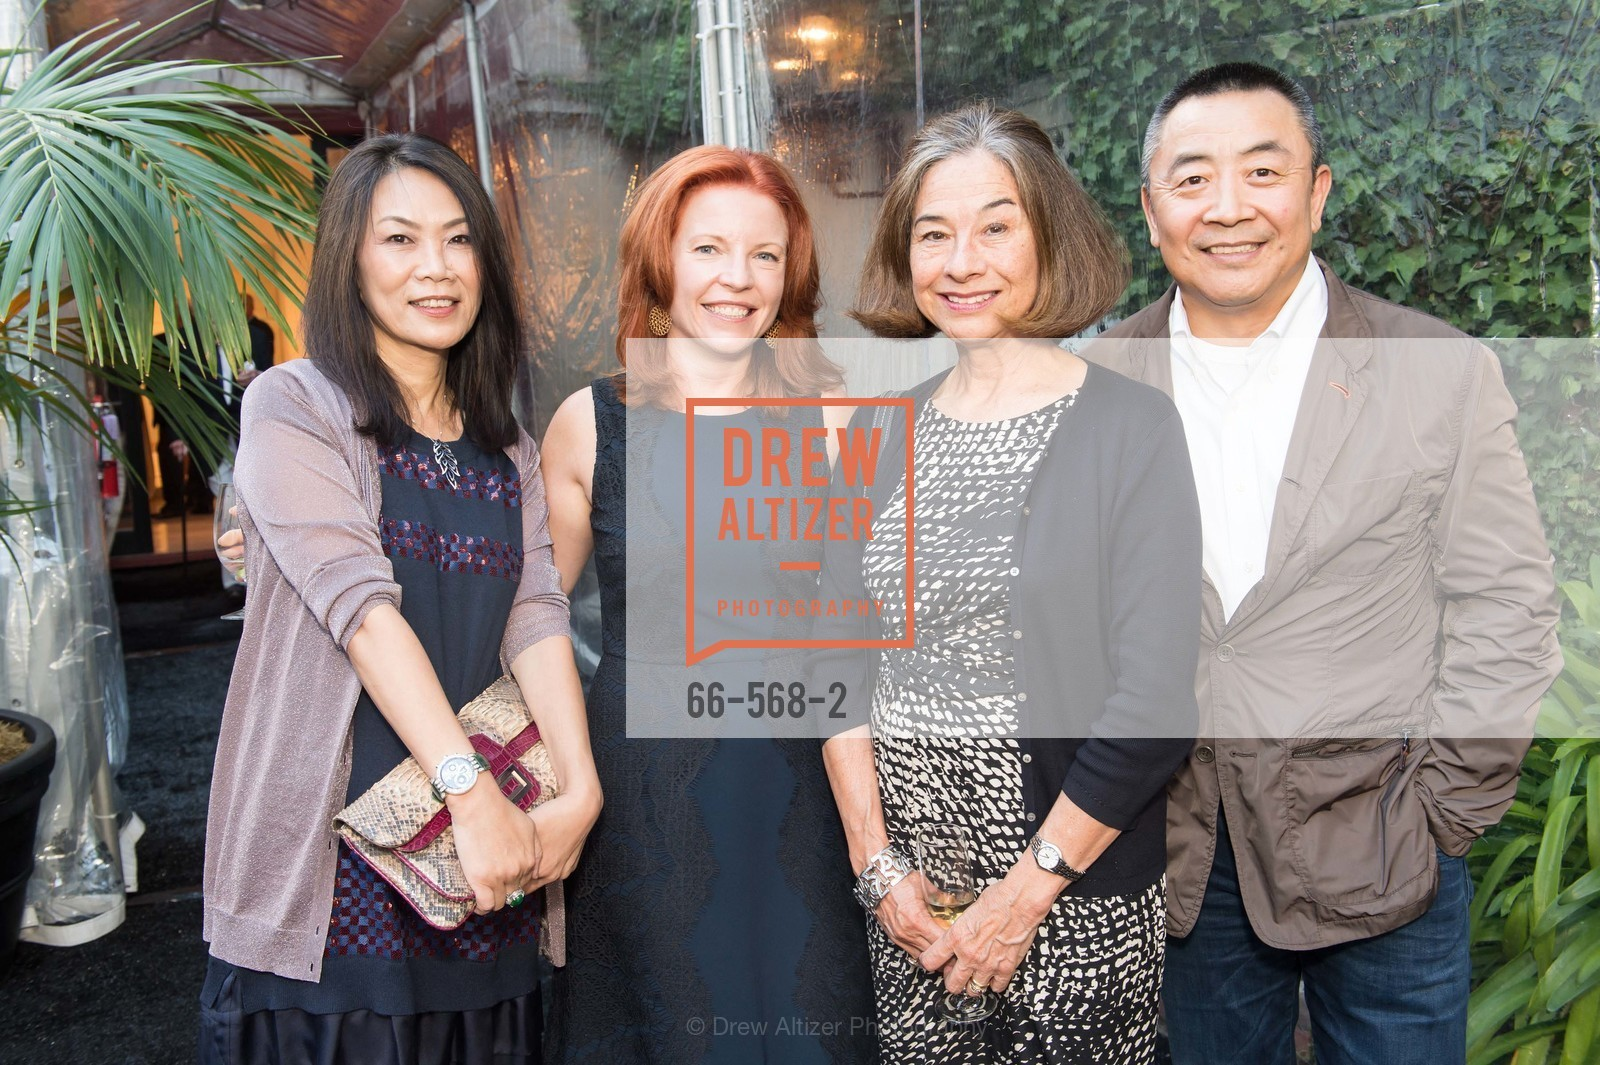 Xiaojun Lee, Elaine Asher, Judith Henry, Julling Lee, SOTHEBY'S  Hosts a Private Viewing of Highlights from the Collection of MRS. PAUL MELLON, US, September 17th, 2014,Drew Altizer, Drew Altizer Photography, full-service agency, private events, San Francisco photographer, photographer california